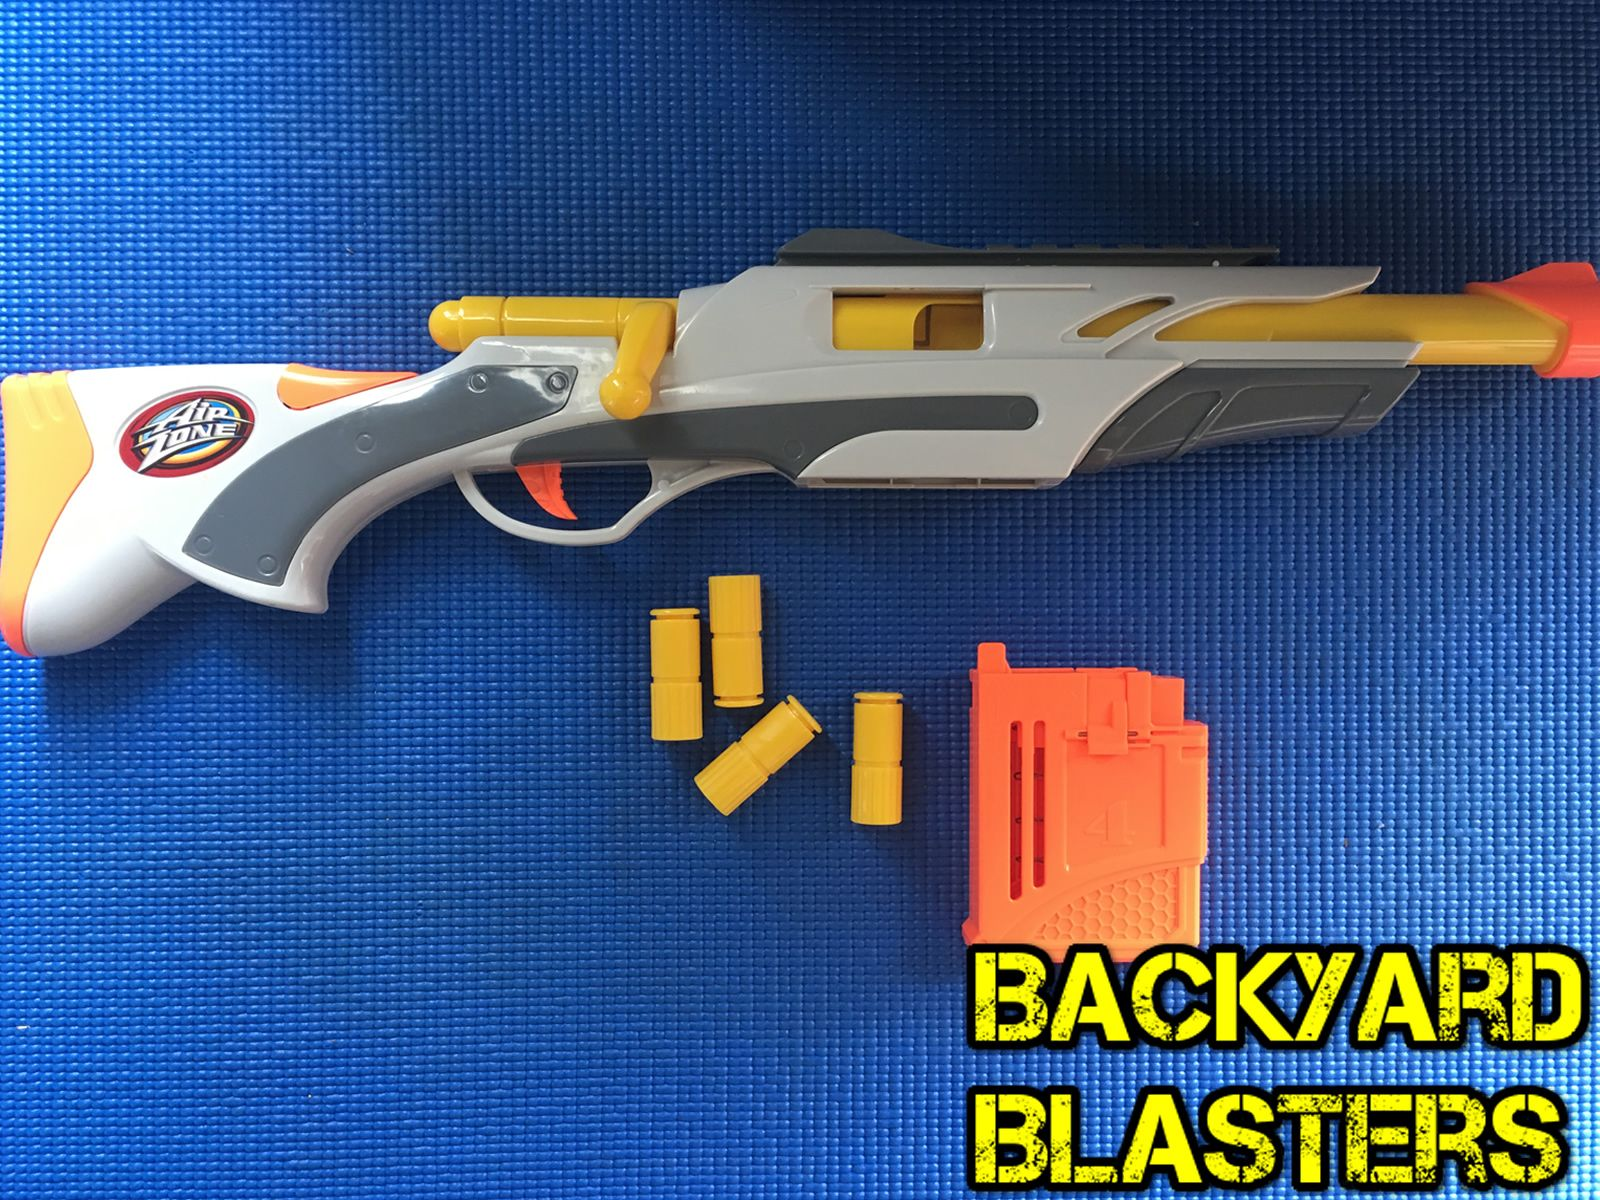 The Air Zone Hawk - bolt action sniper rifle. #sniper #airzone #nerf